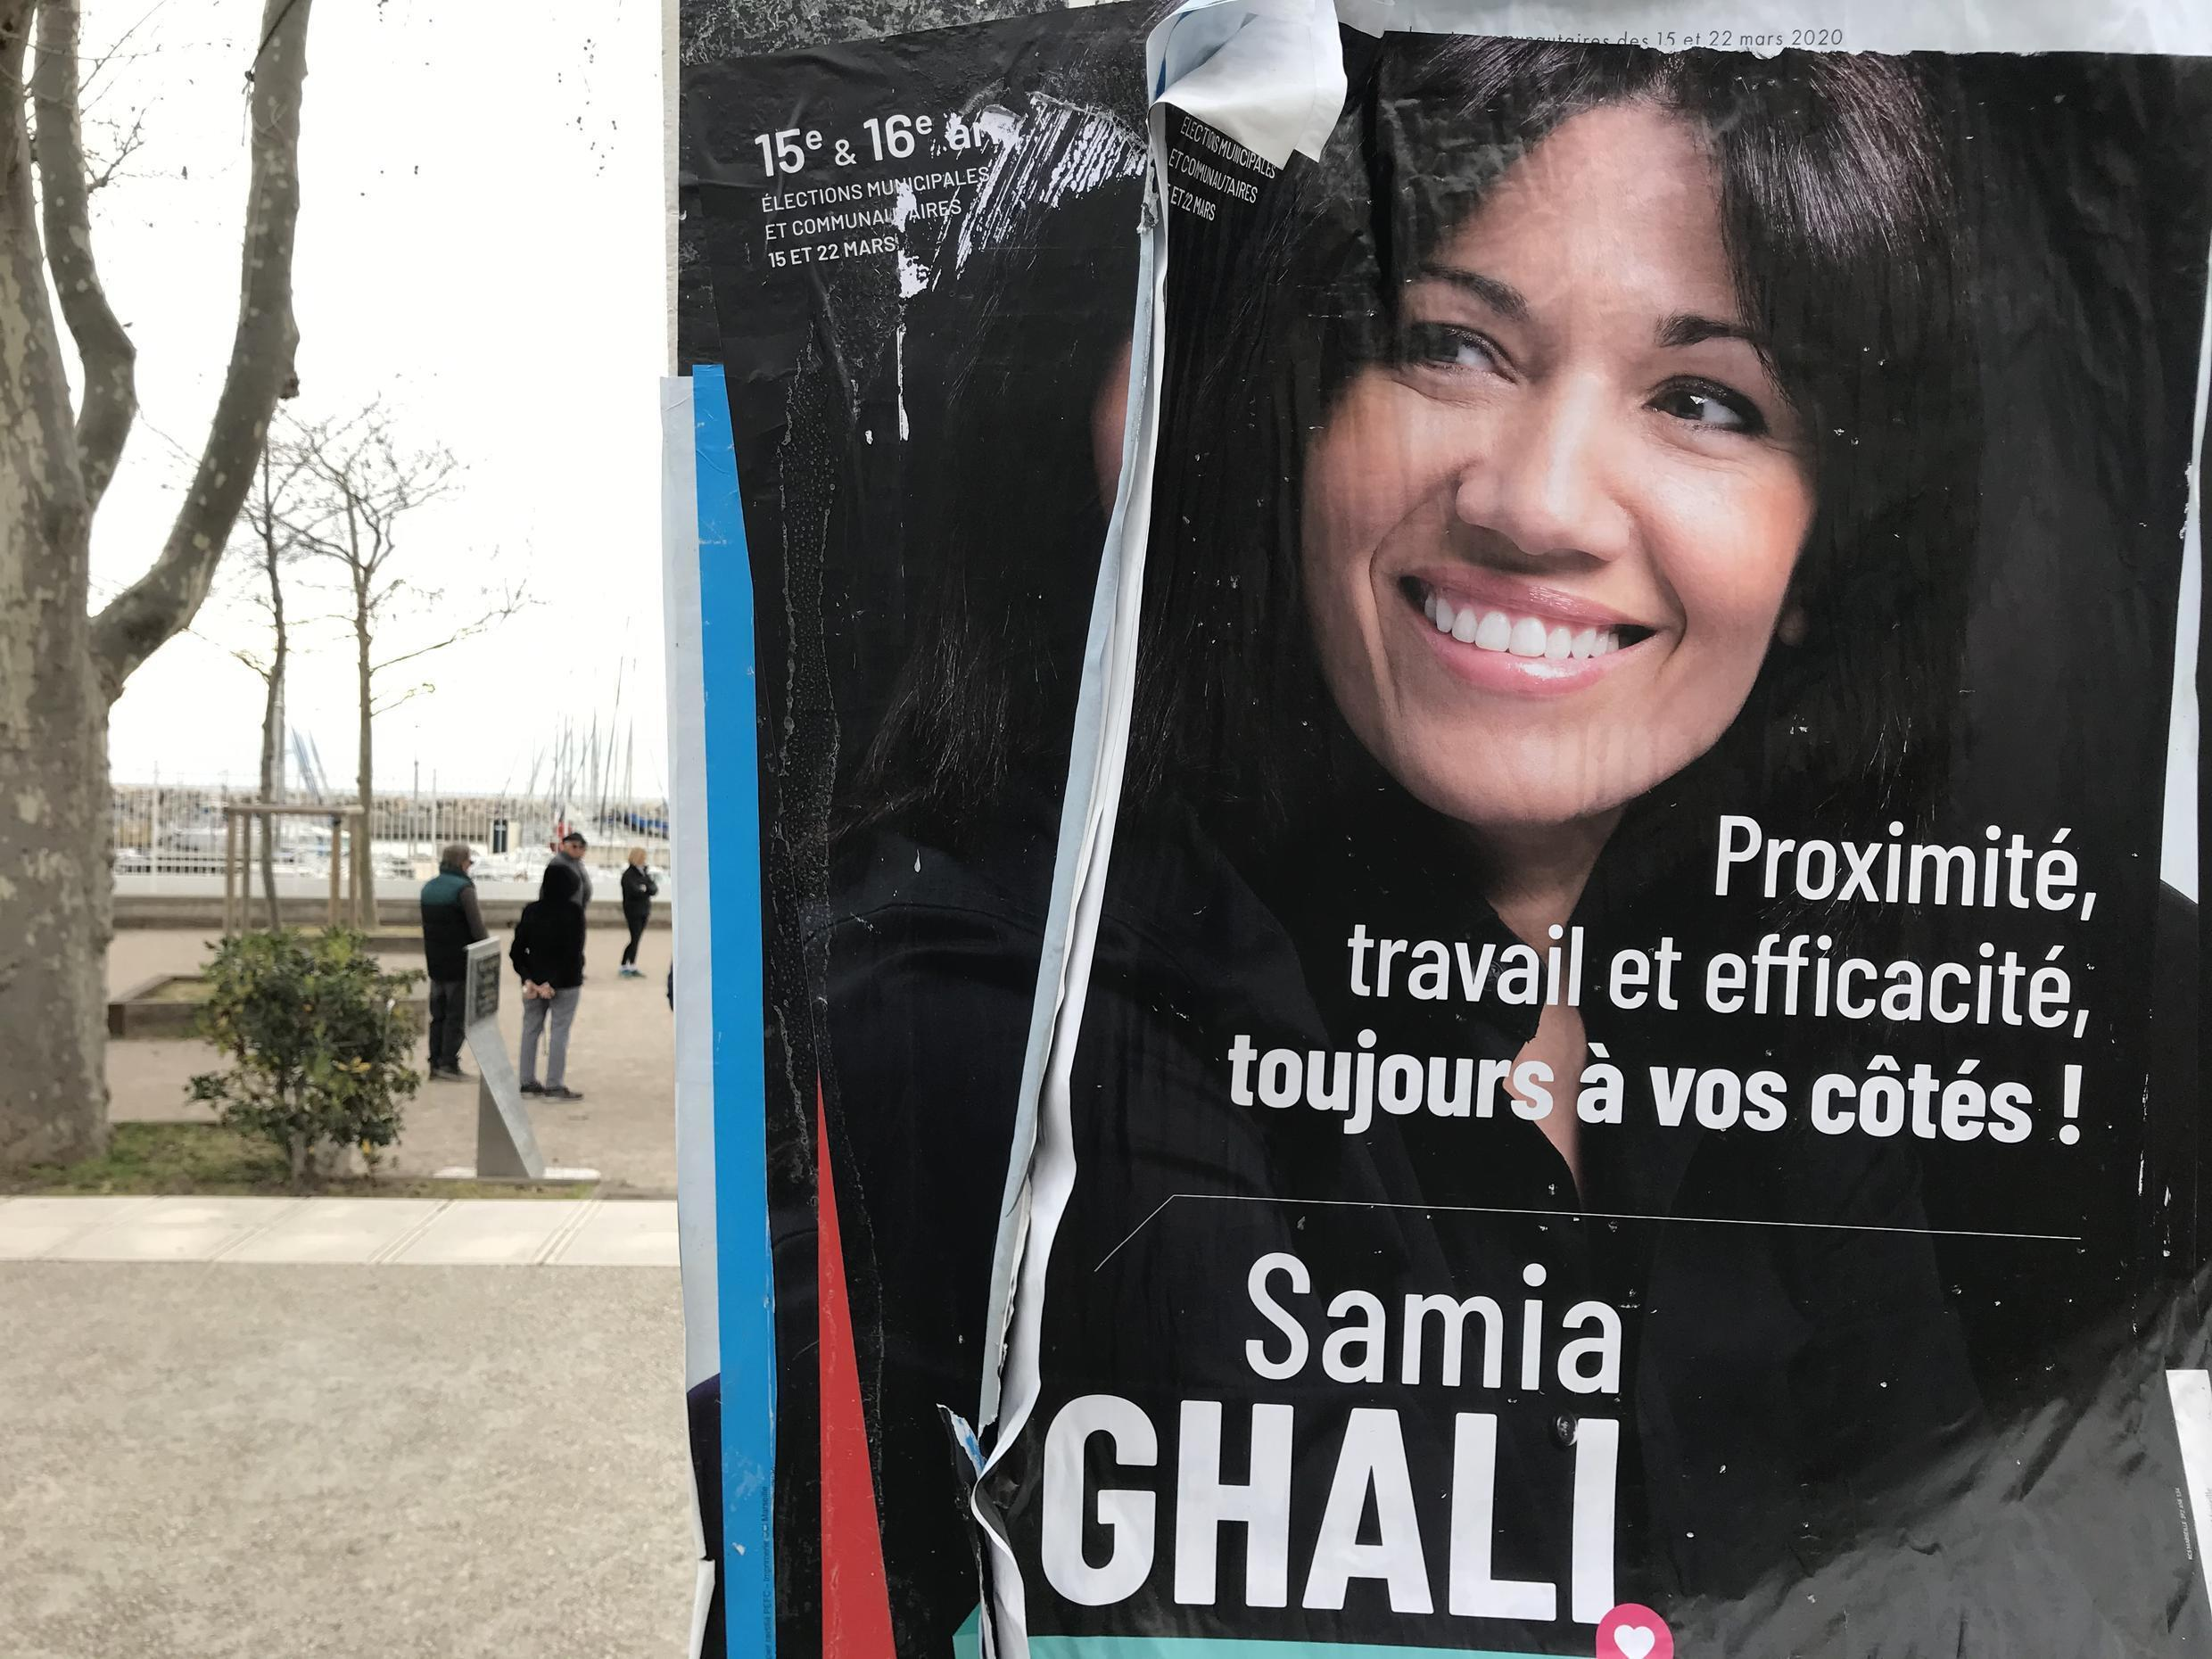 A poster for Senator Samia Ghali, who has refused to join other left-wingers in a common platform.